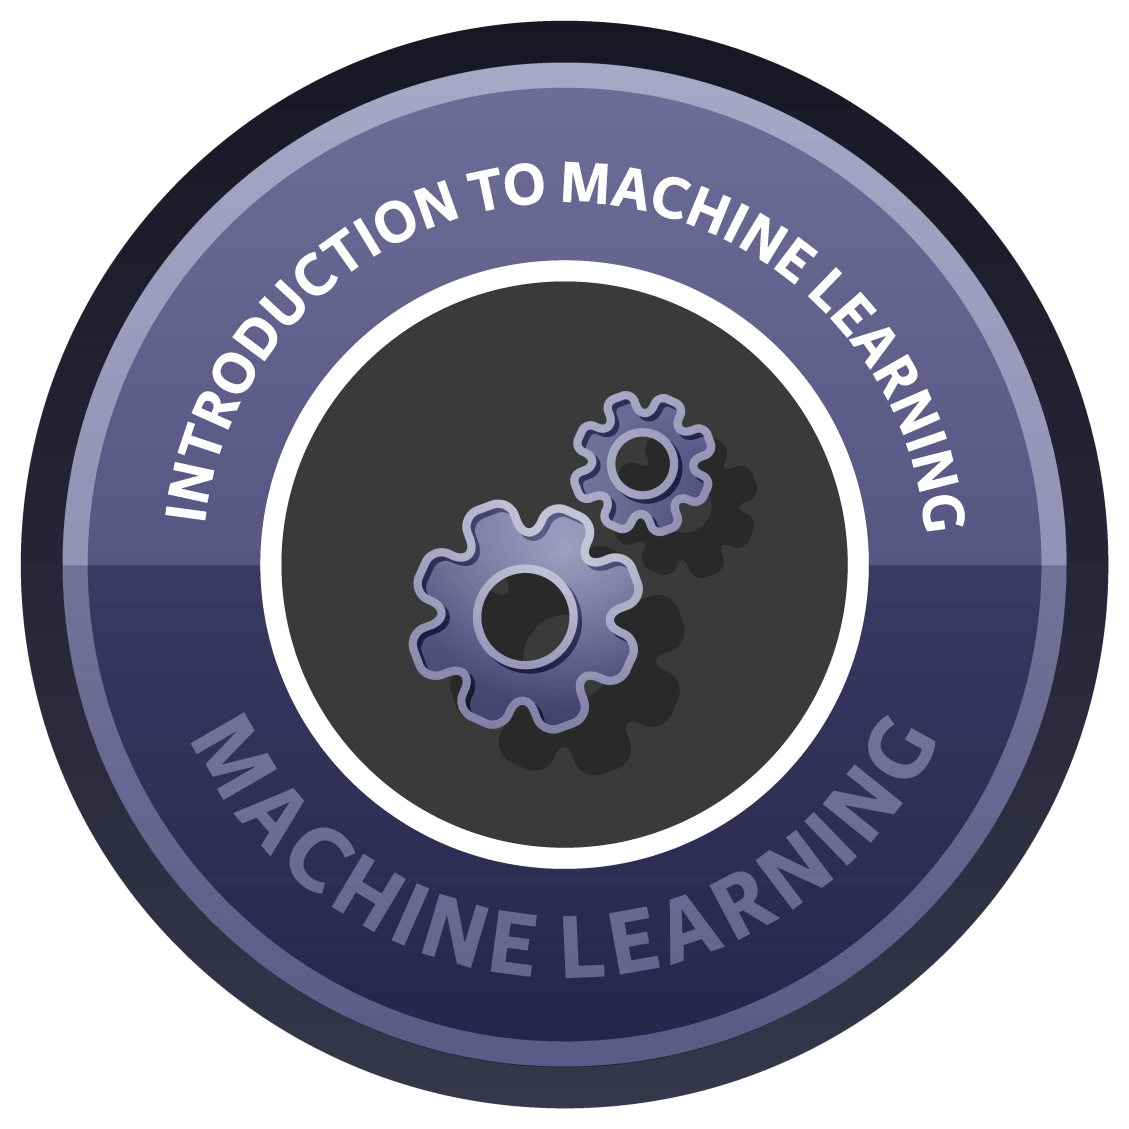 prerequisite for machine learning